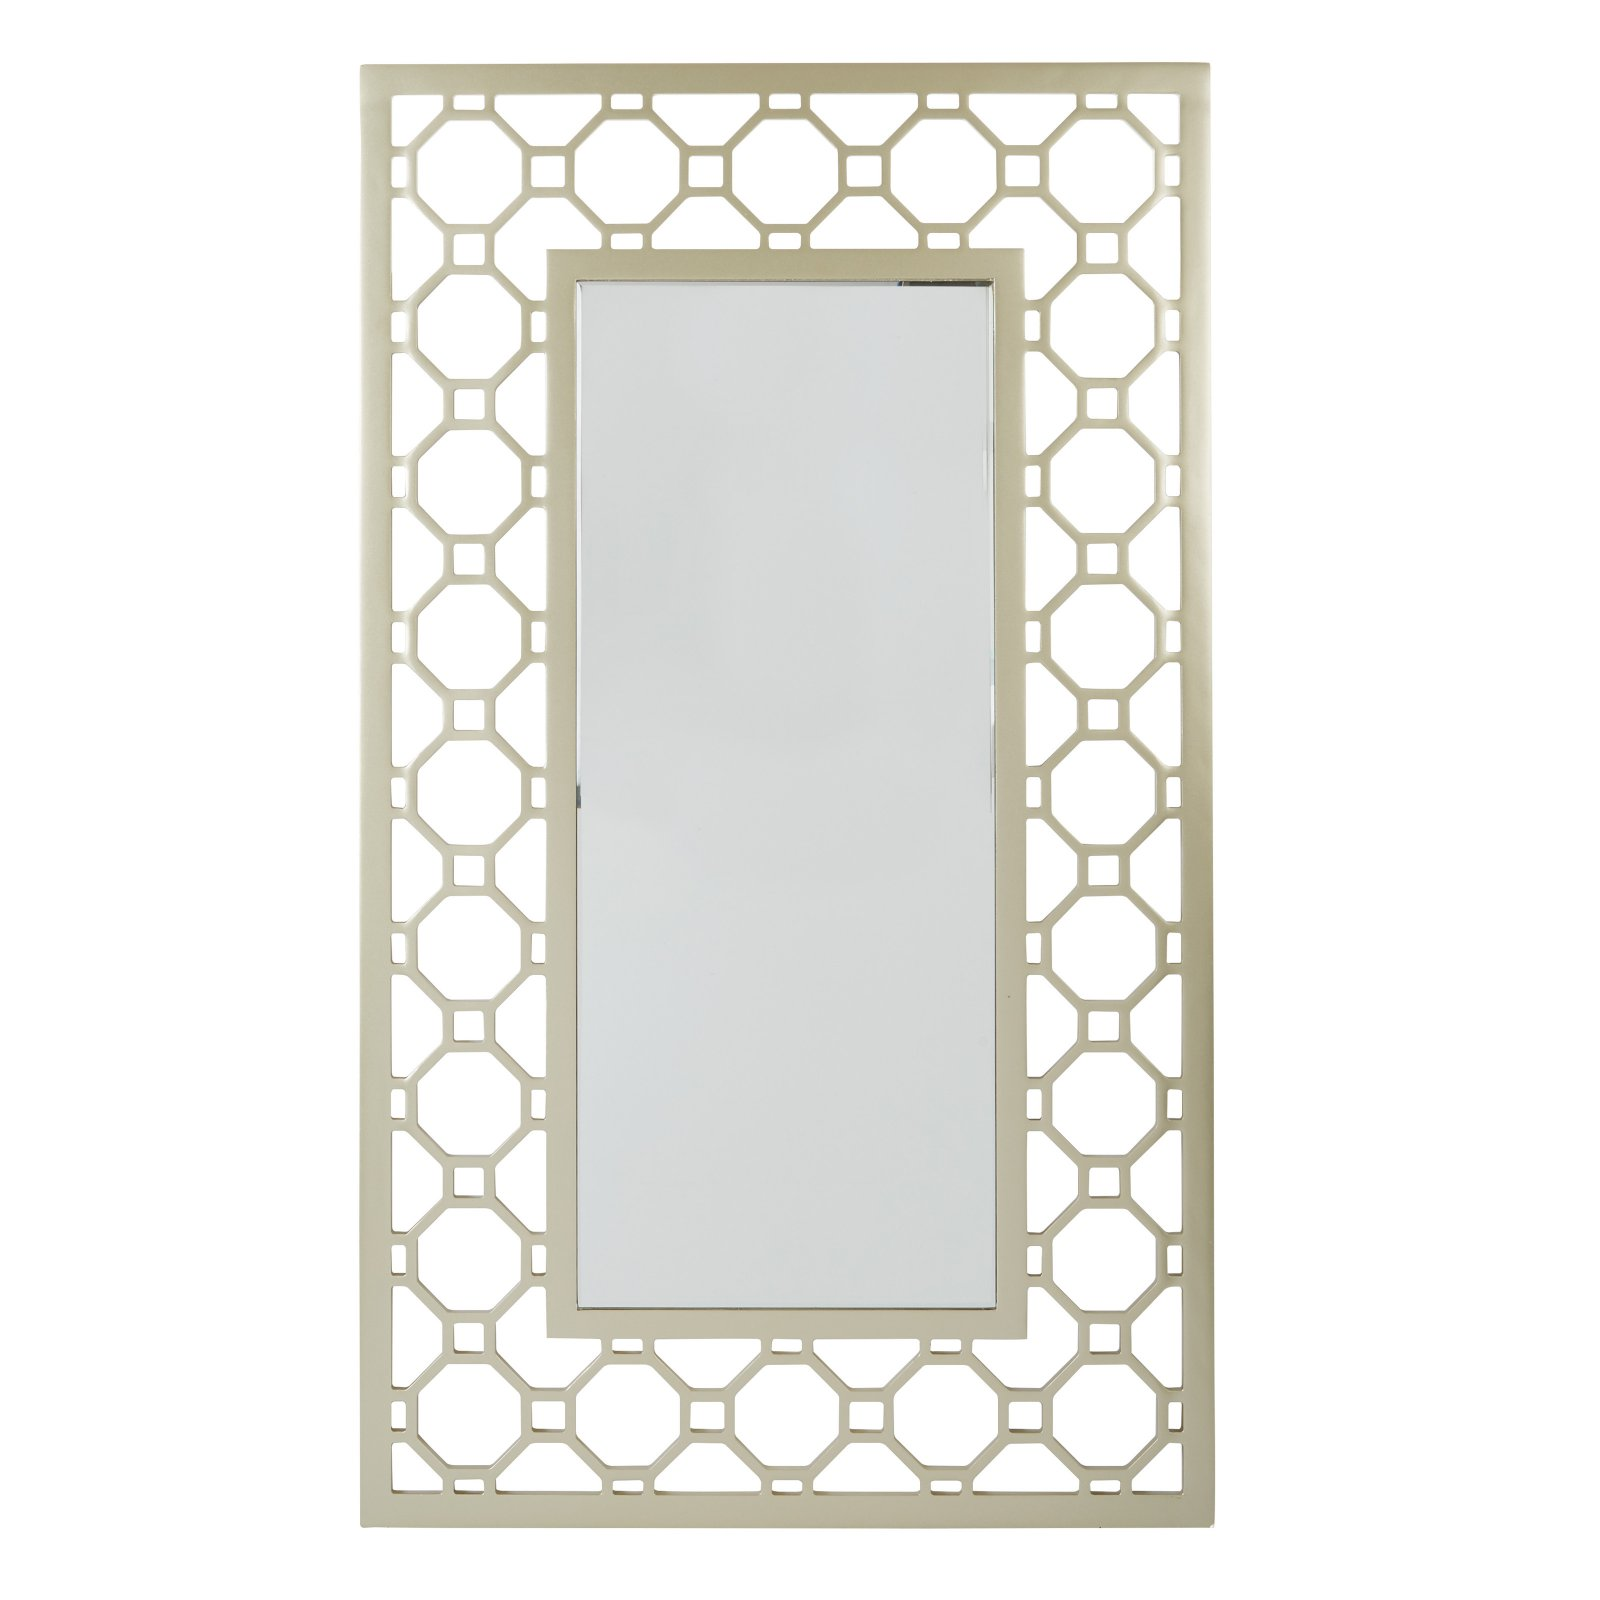 Matte Gold Frame Square Mirror ASM by Office Star Products